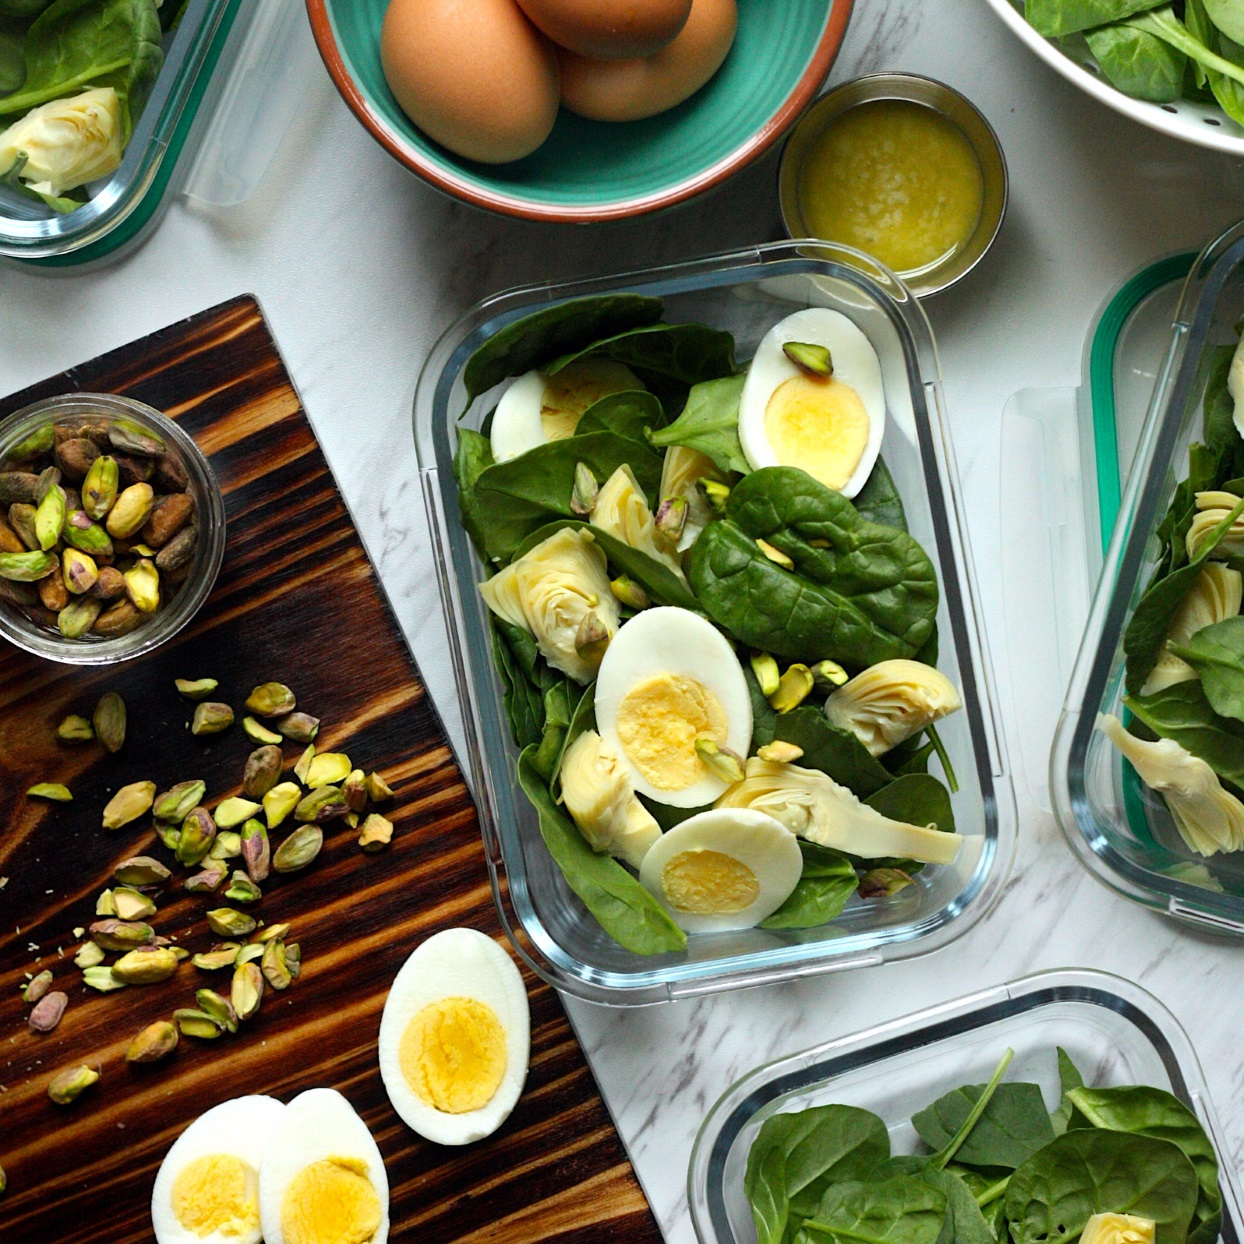 Inspired by the classic warm party dip, this simple salad can be served up right away or divided into small lidded containers for a week of delicious lunches. To keep the hard-boiled eggs tasting fresh, we suggest adding them to your salad just before serving or in the morning before packing your lunch to go. Source: EatingWell.com, December 2019